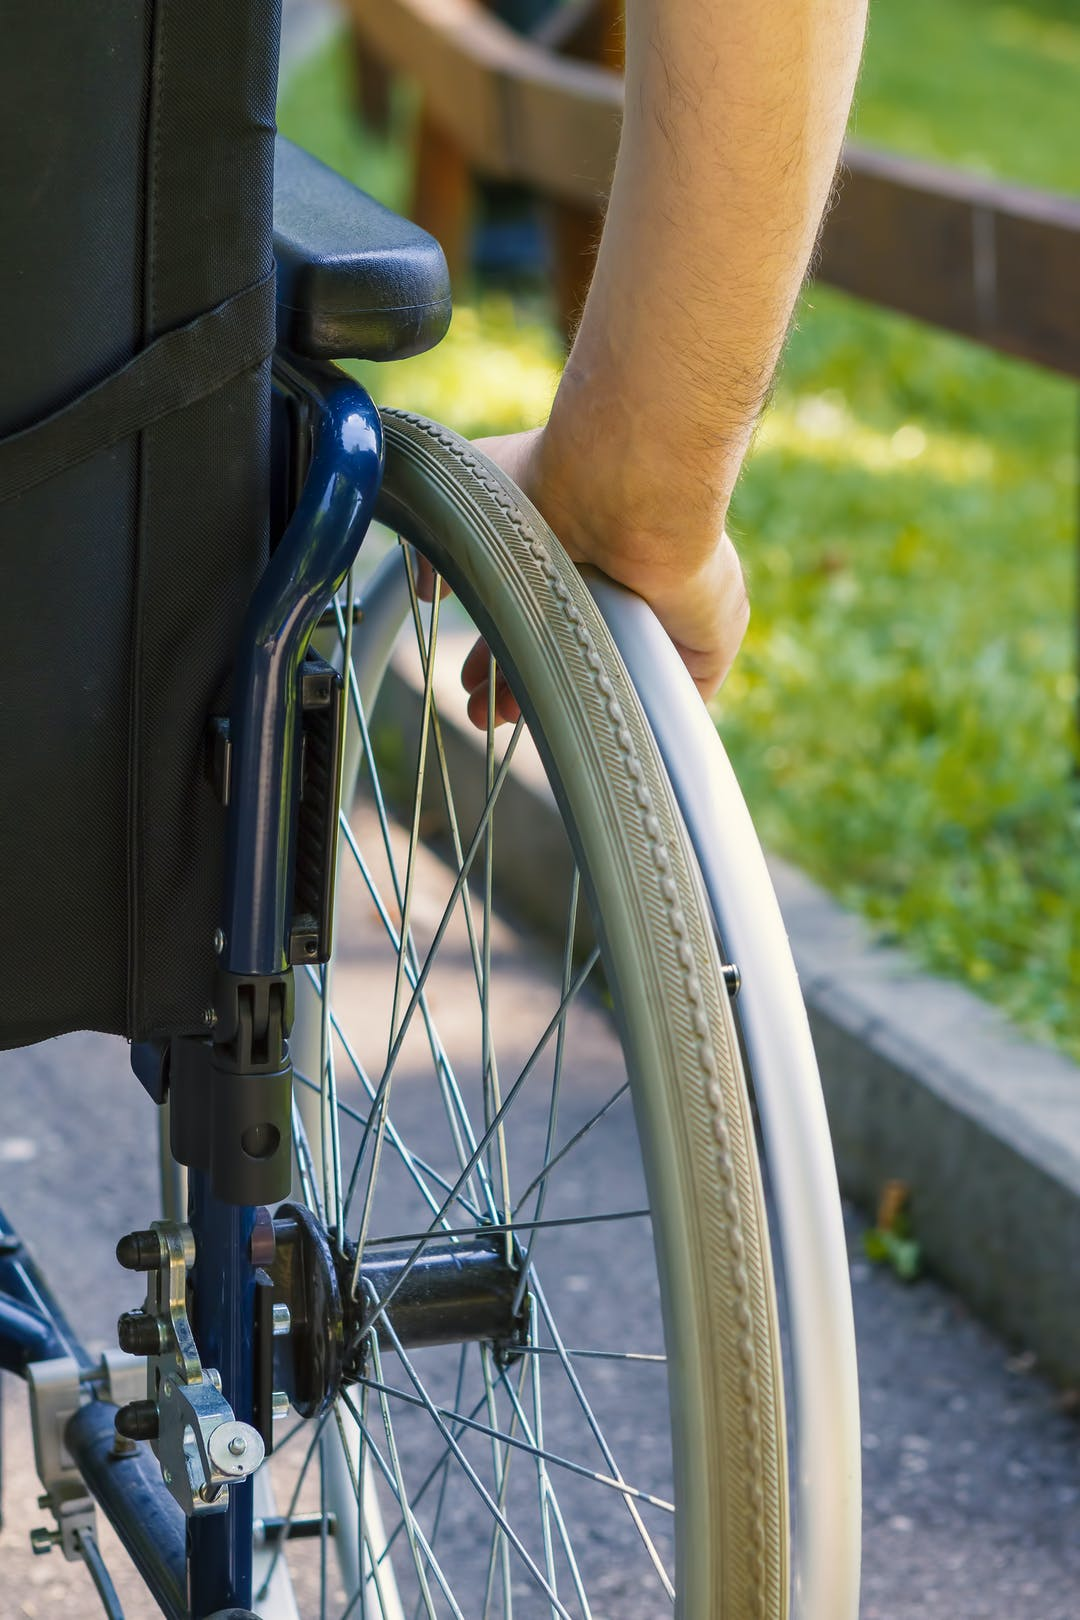 Wheelchair wheel close up